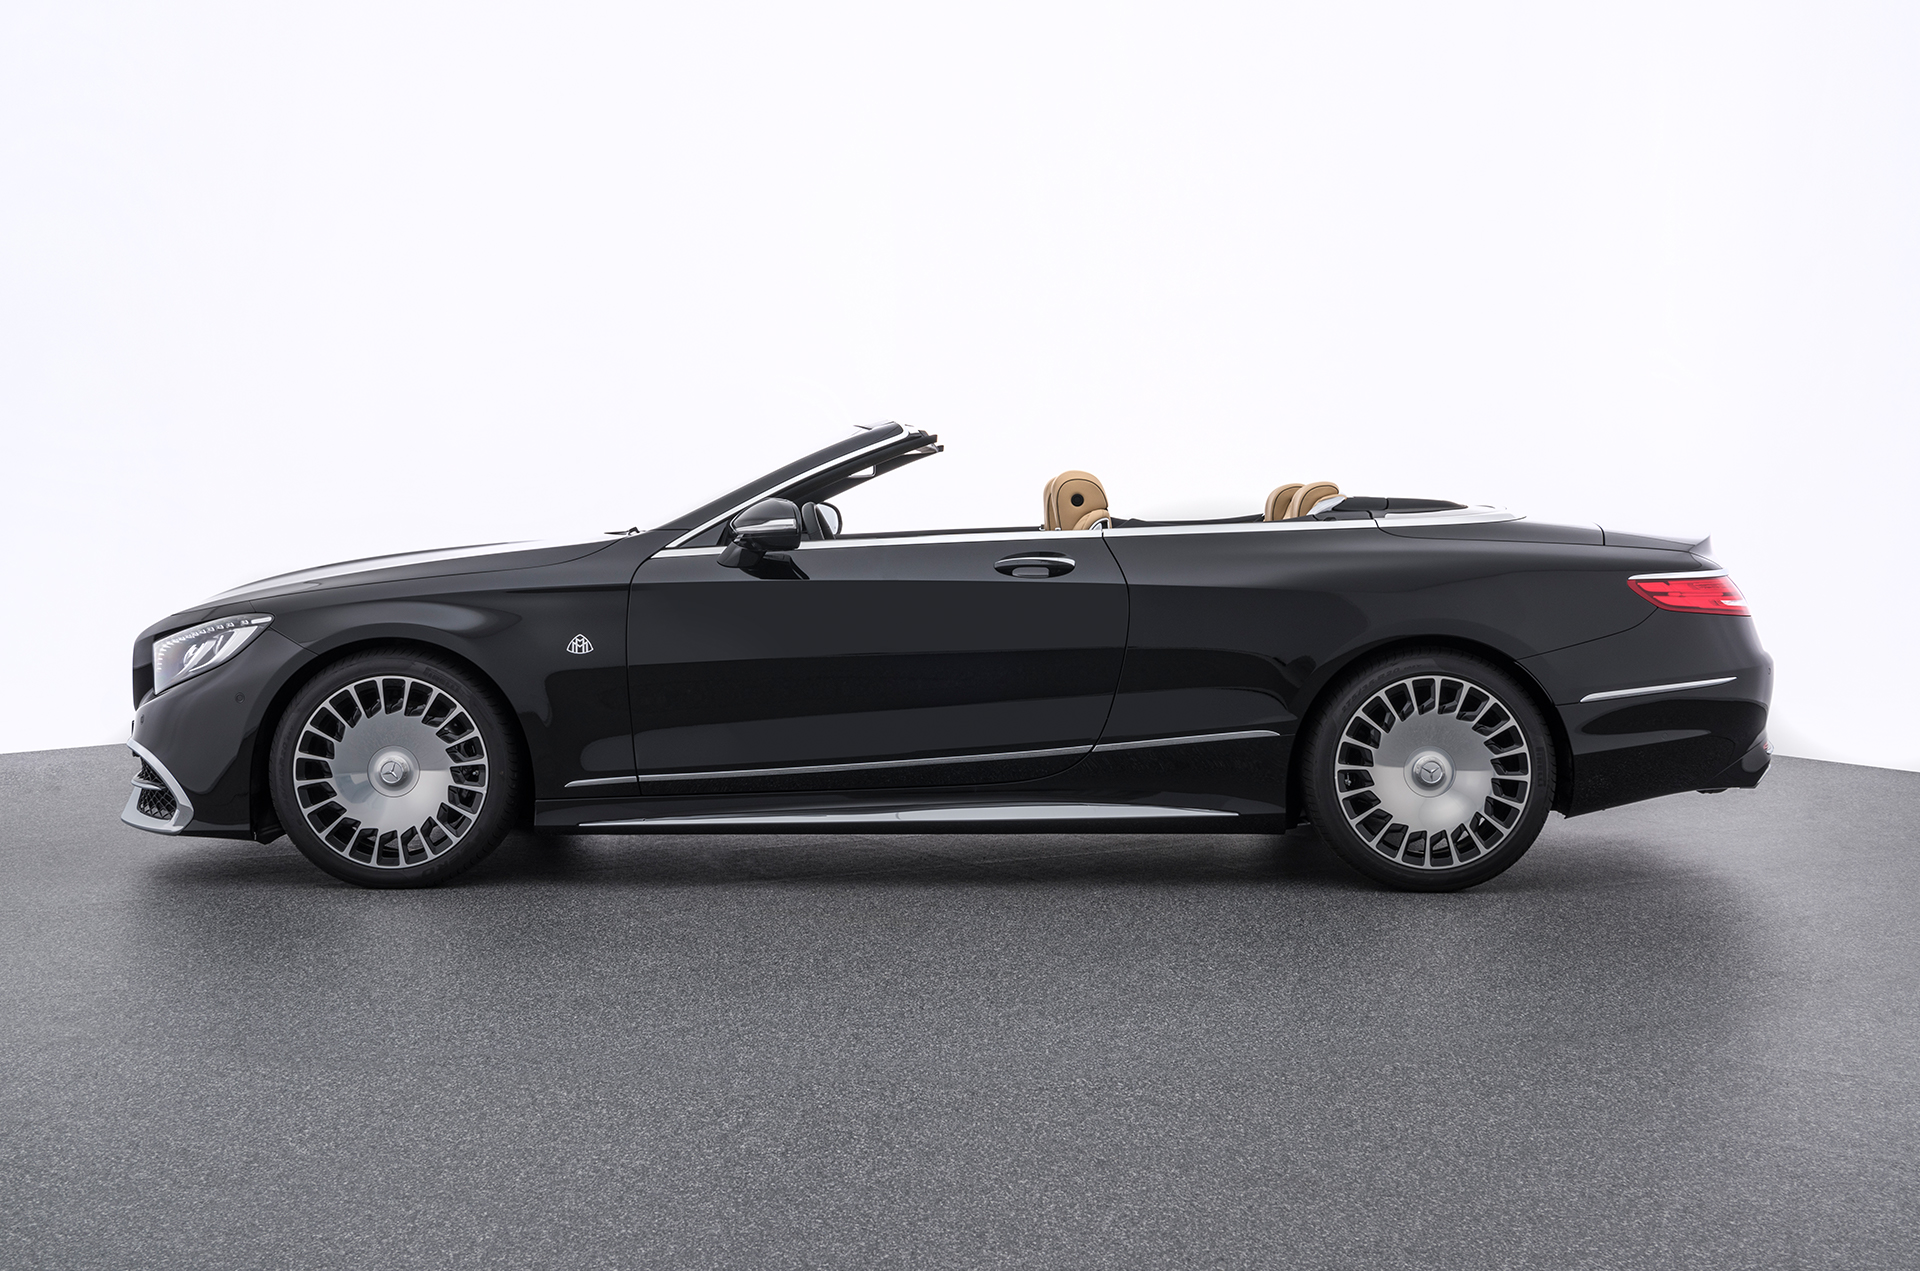 Mercedes-Maybach 650 Cabriolet